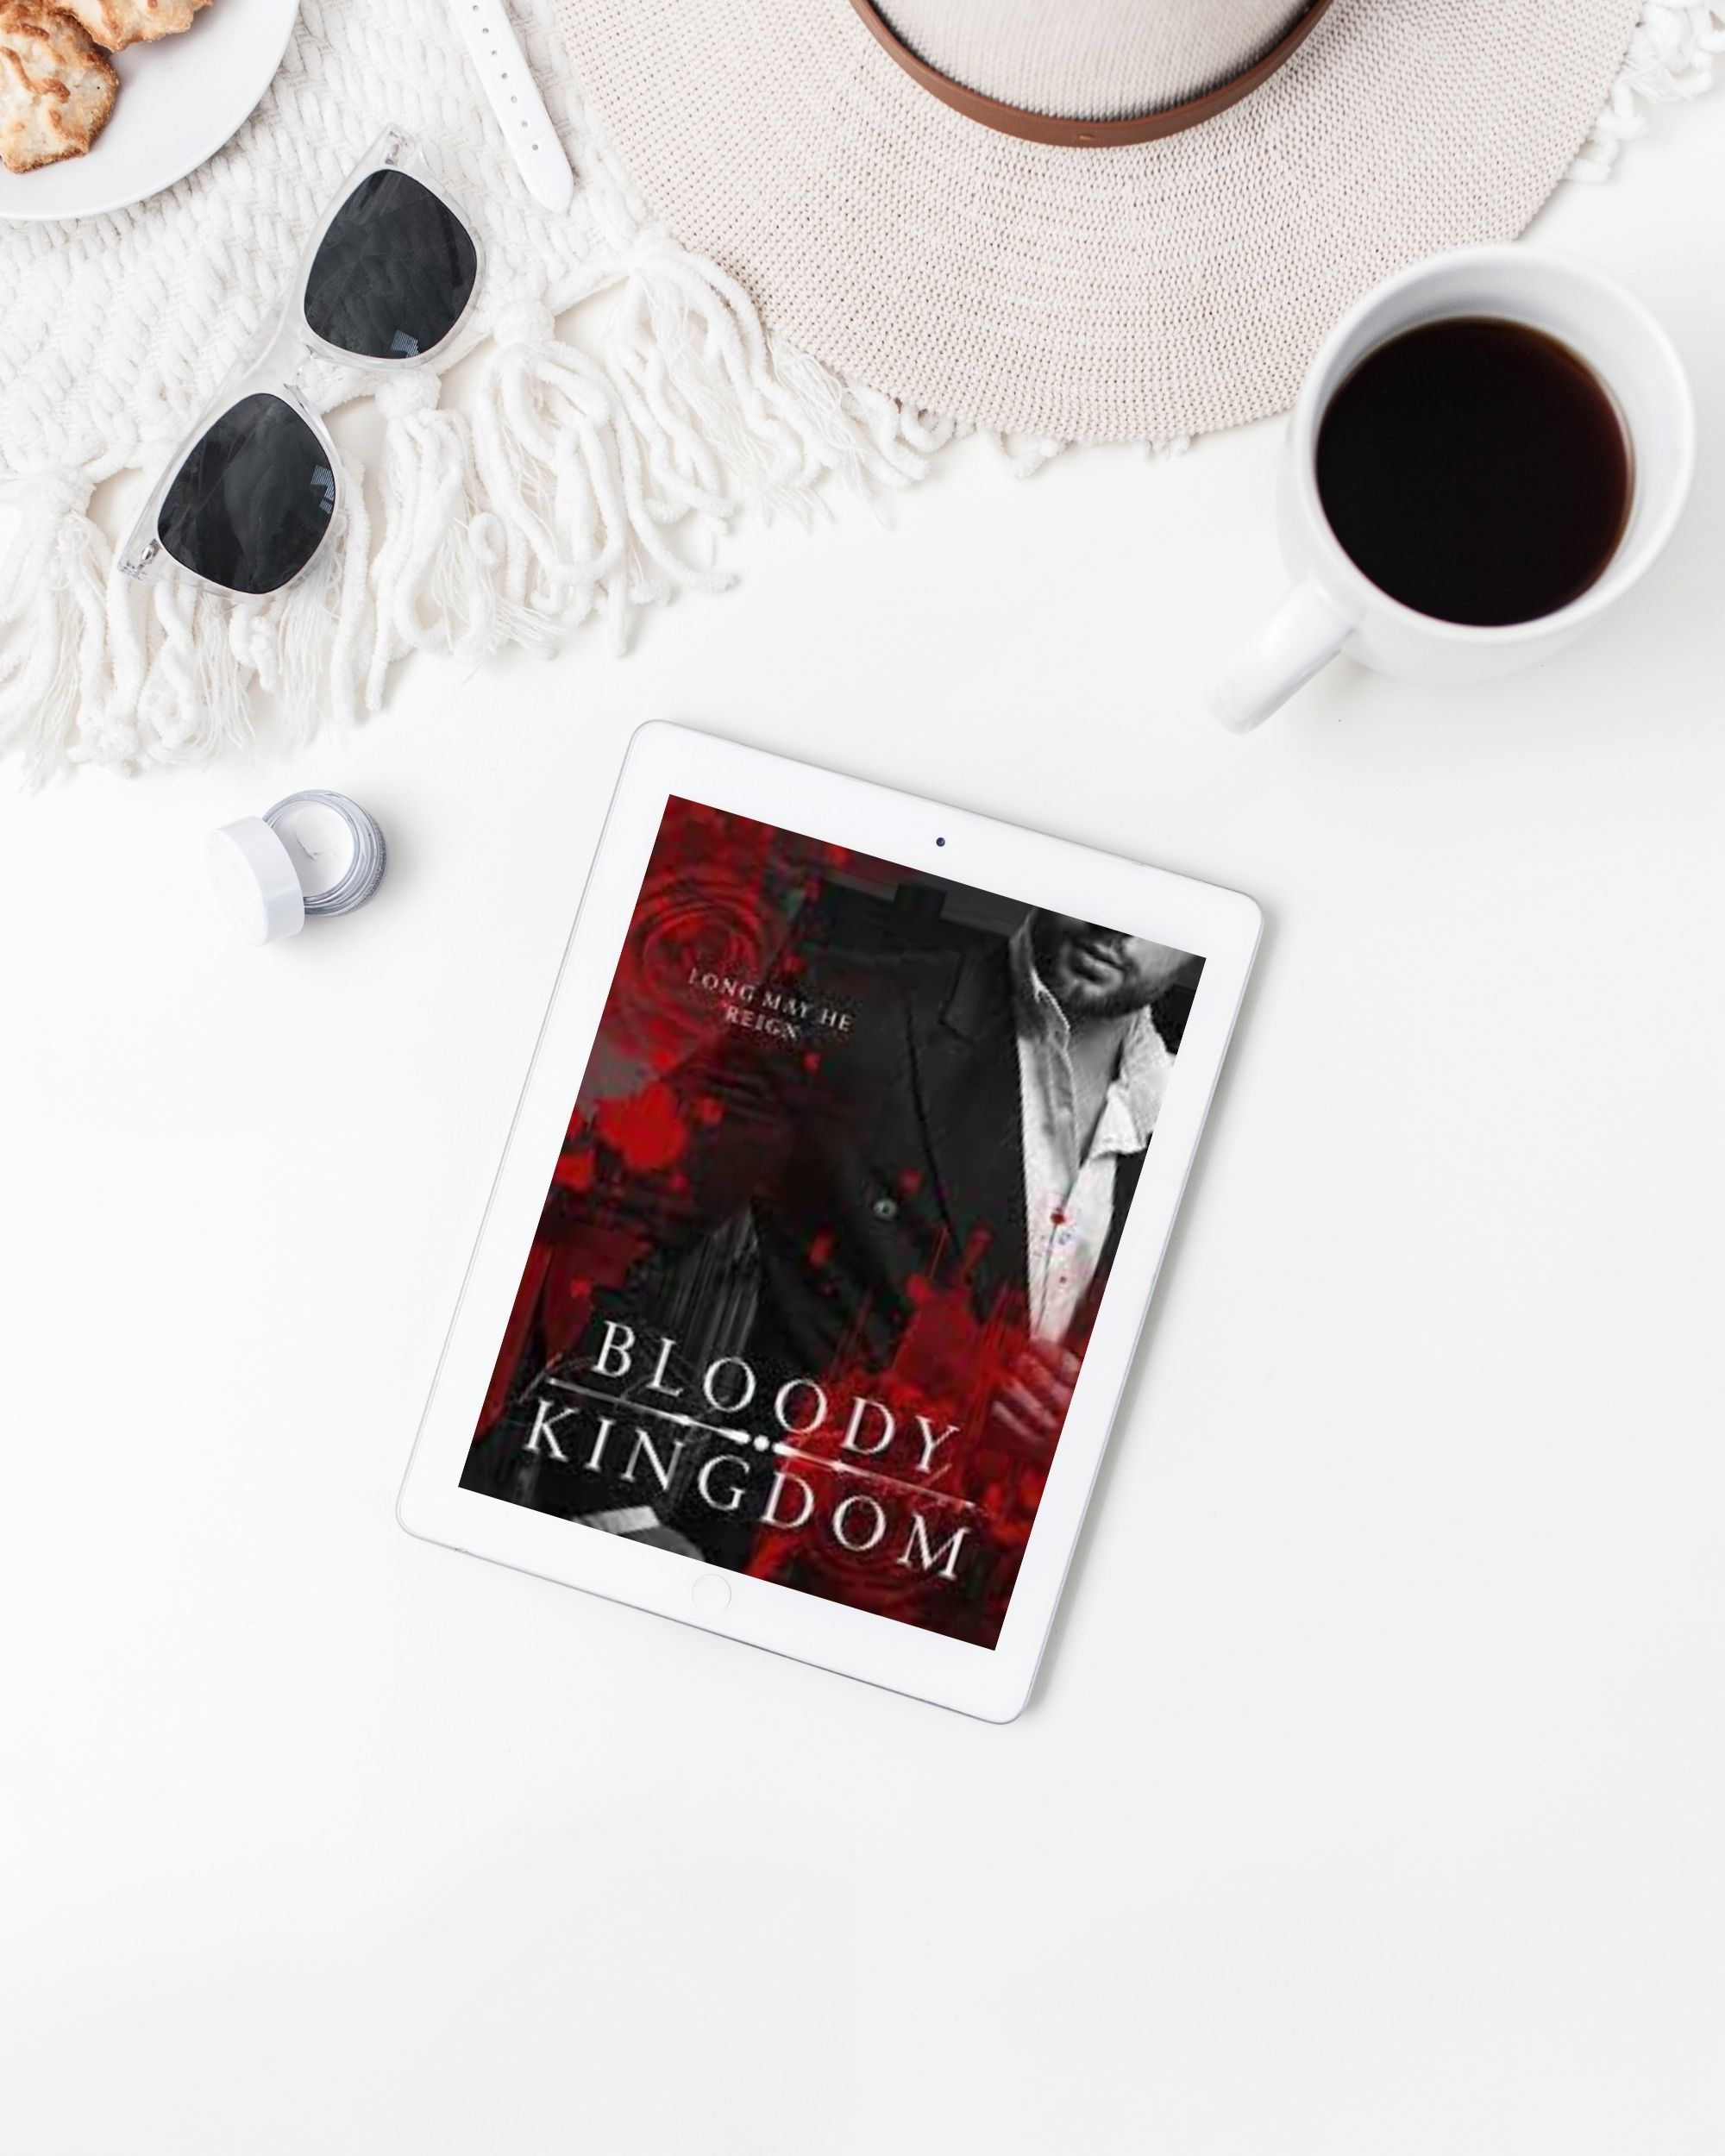 Bloody Kingdom by Kayleigh King Book Review at Wickedly Romance